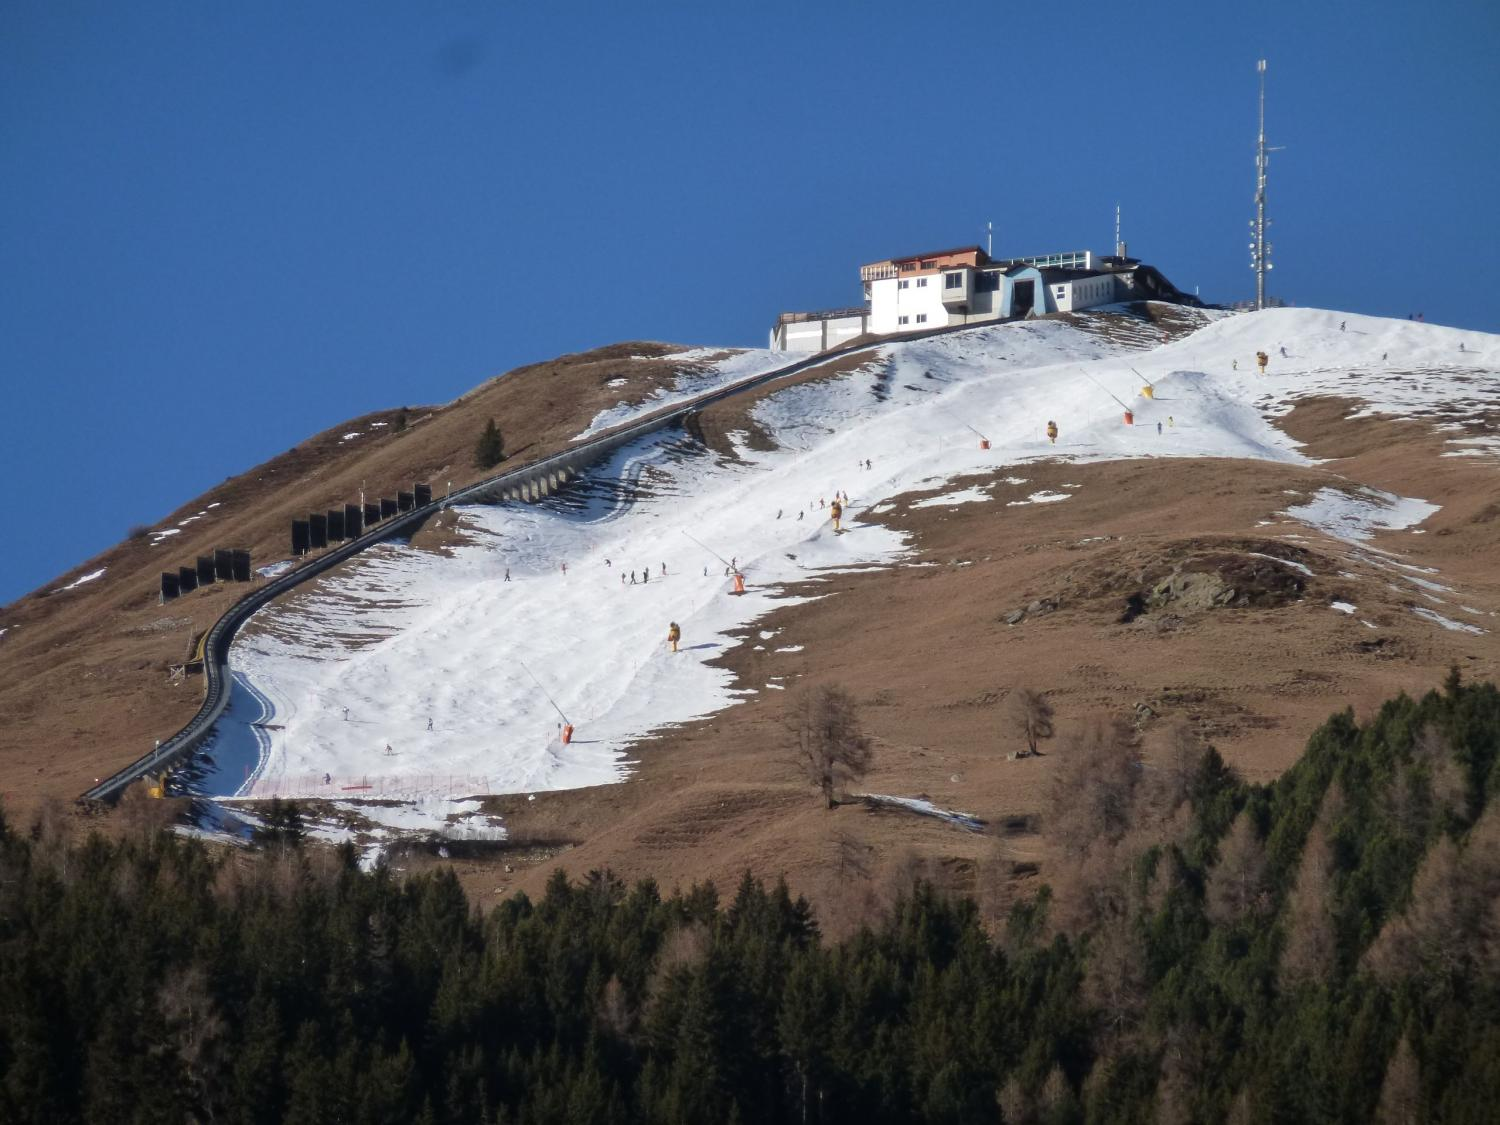 Scientists Predict the Alps Will Lose 70 Percent of Its Snow by 2100 recommend